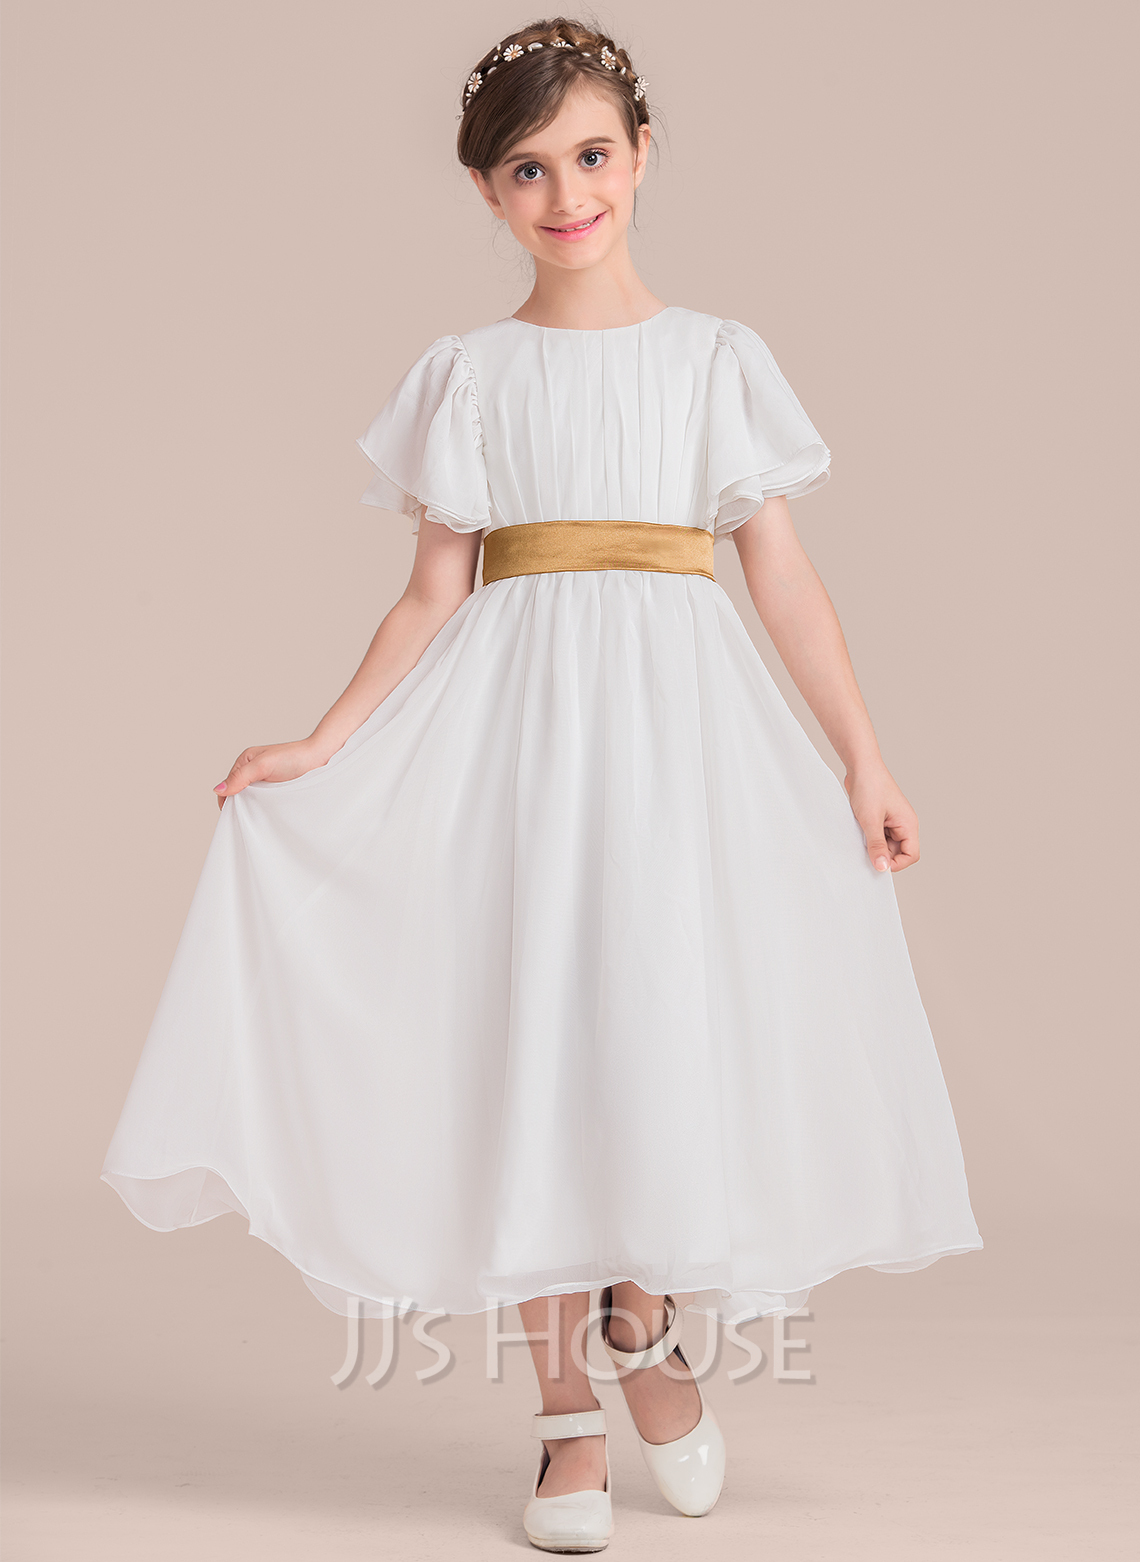 A-Line Scoop Neck Tea-Length Chiffon Junior Bridesmaid Dress With Ruffle Sash